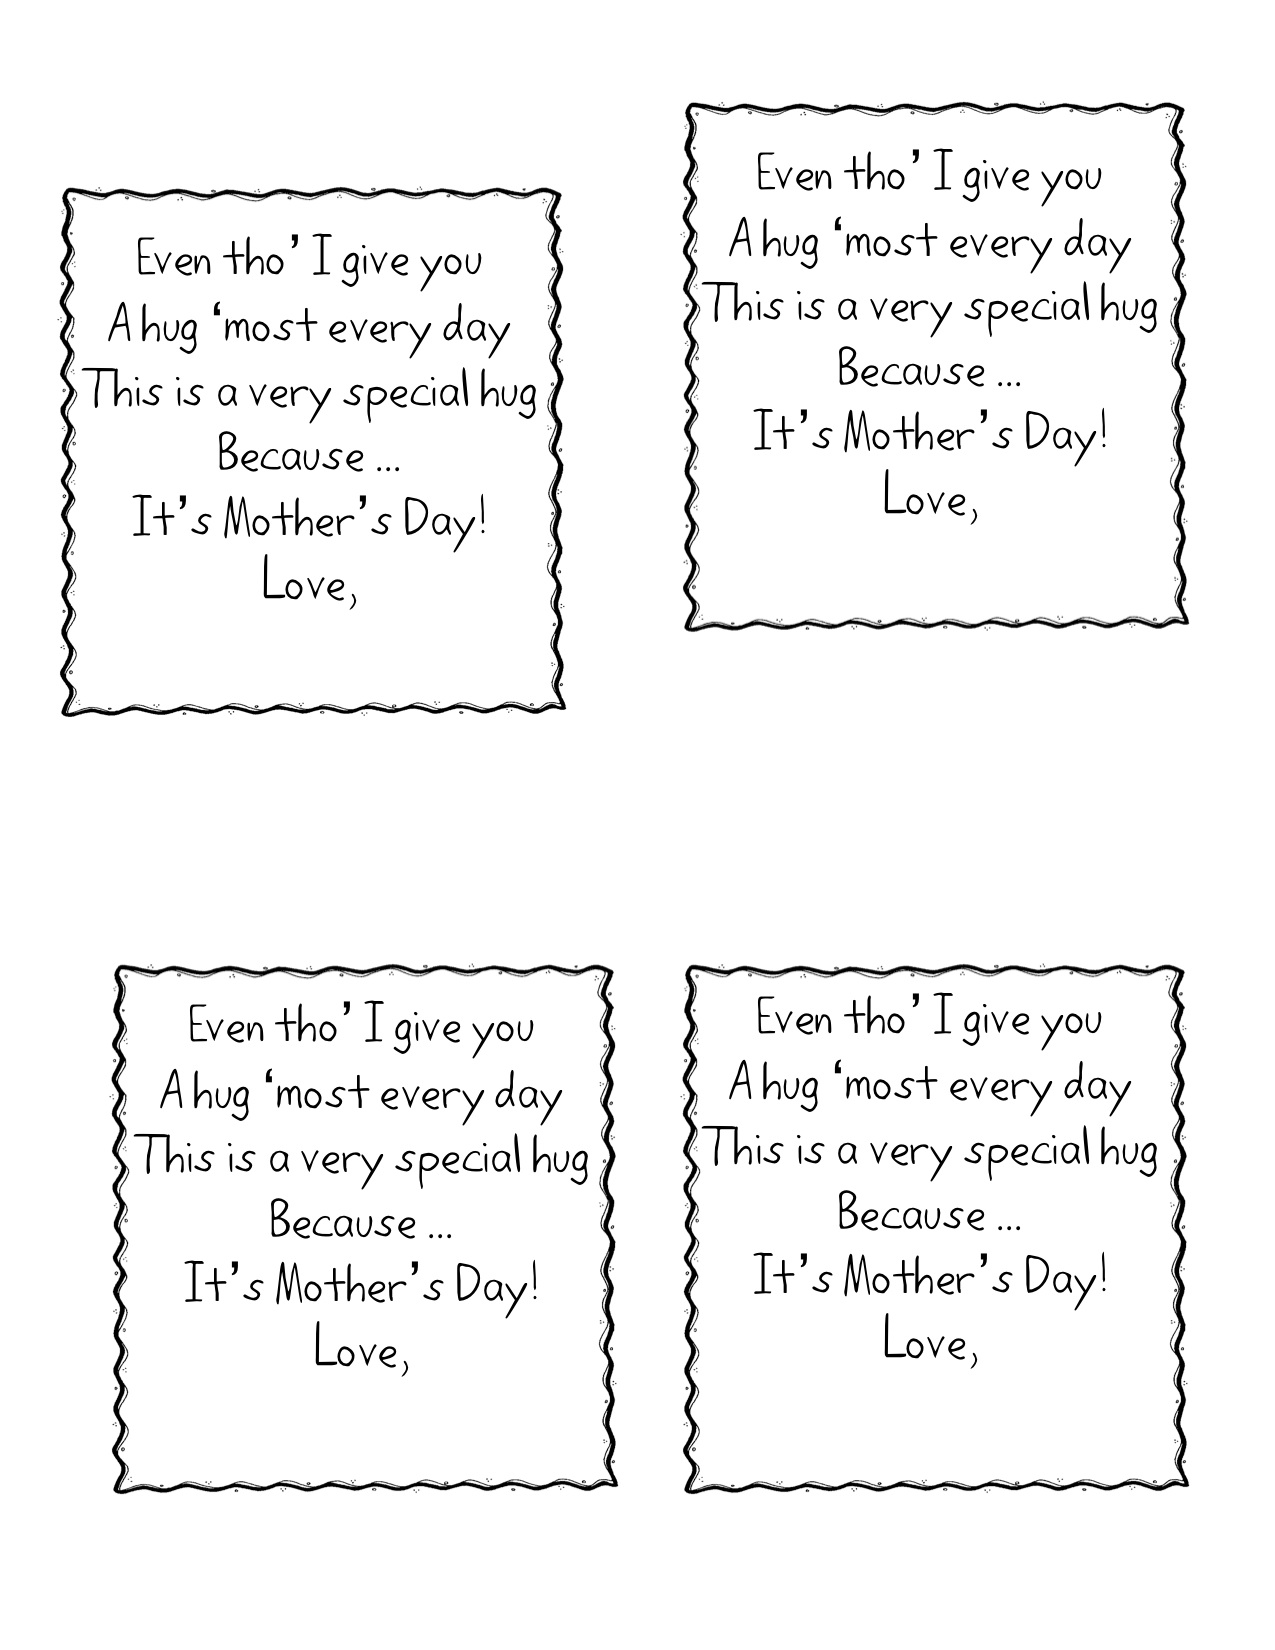 Mothers Day Verses For Cards